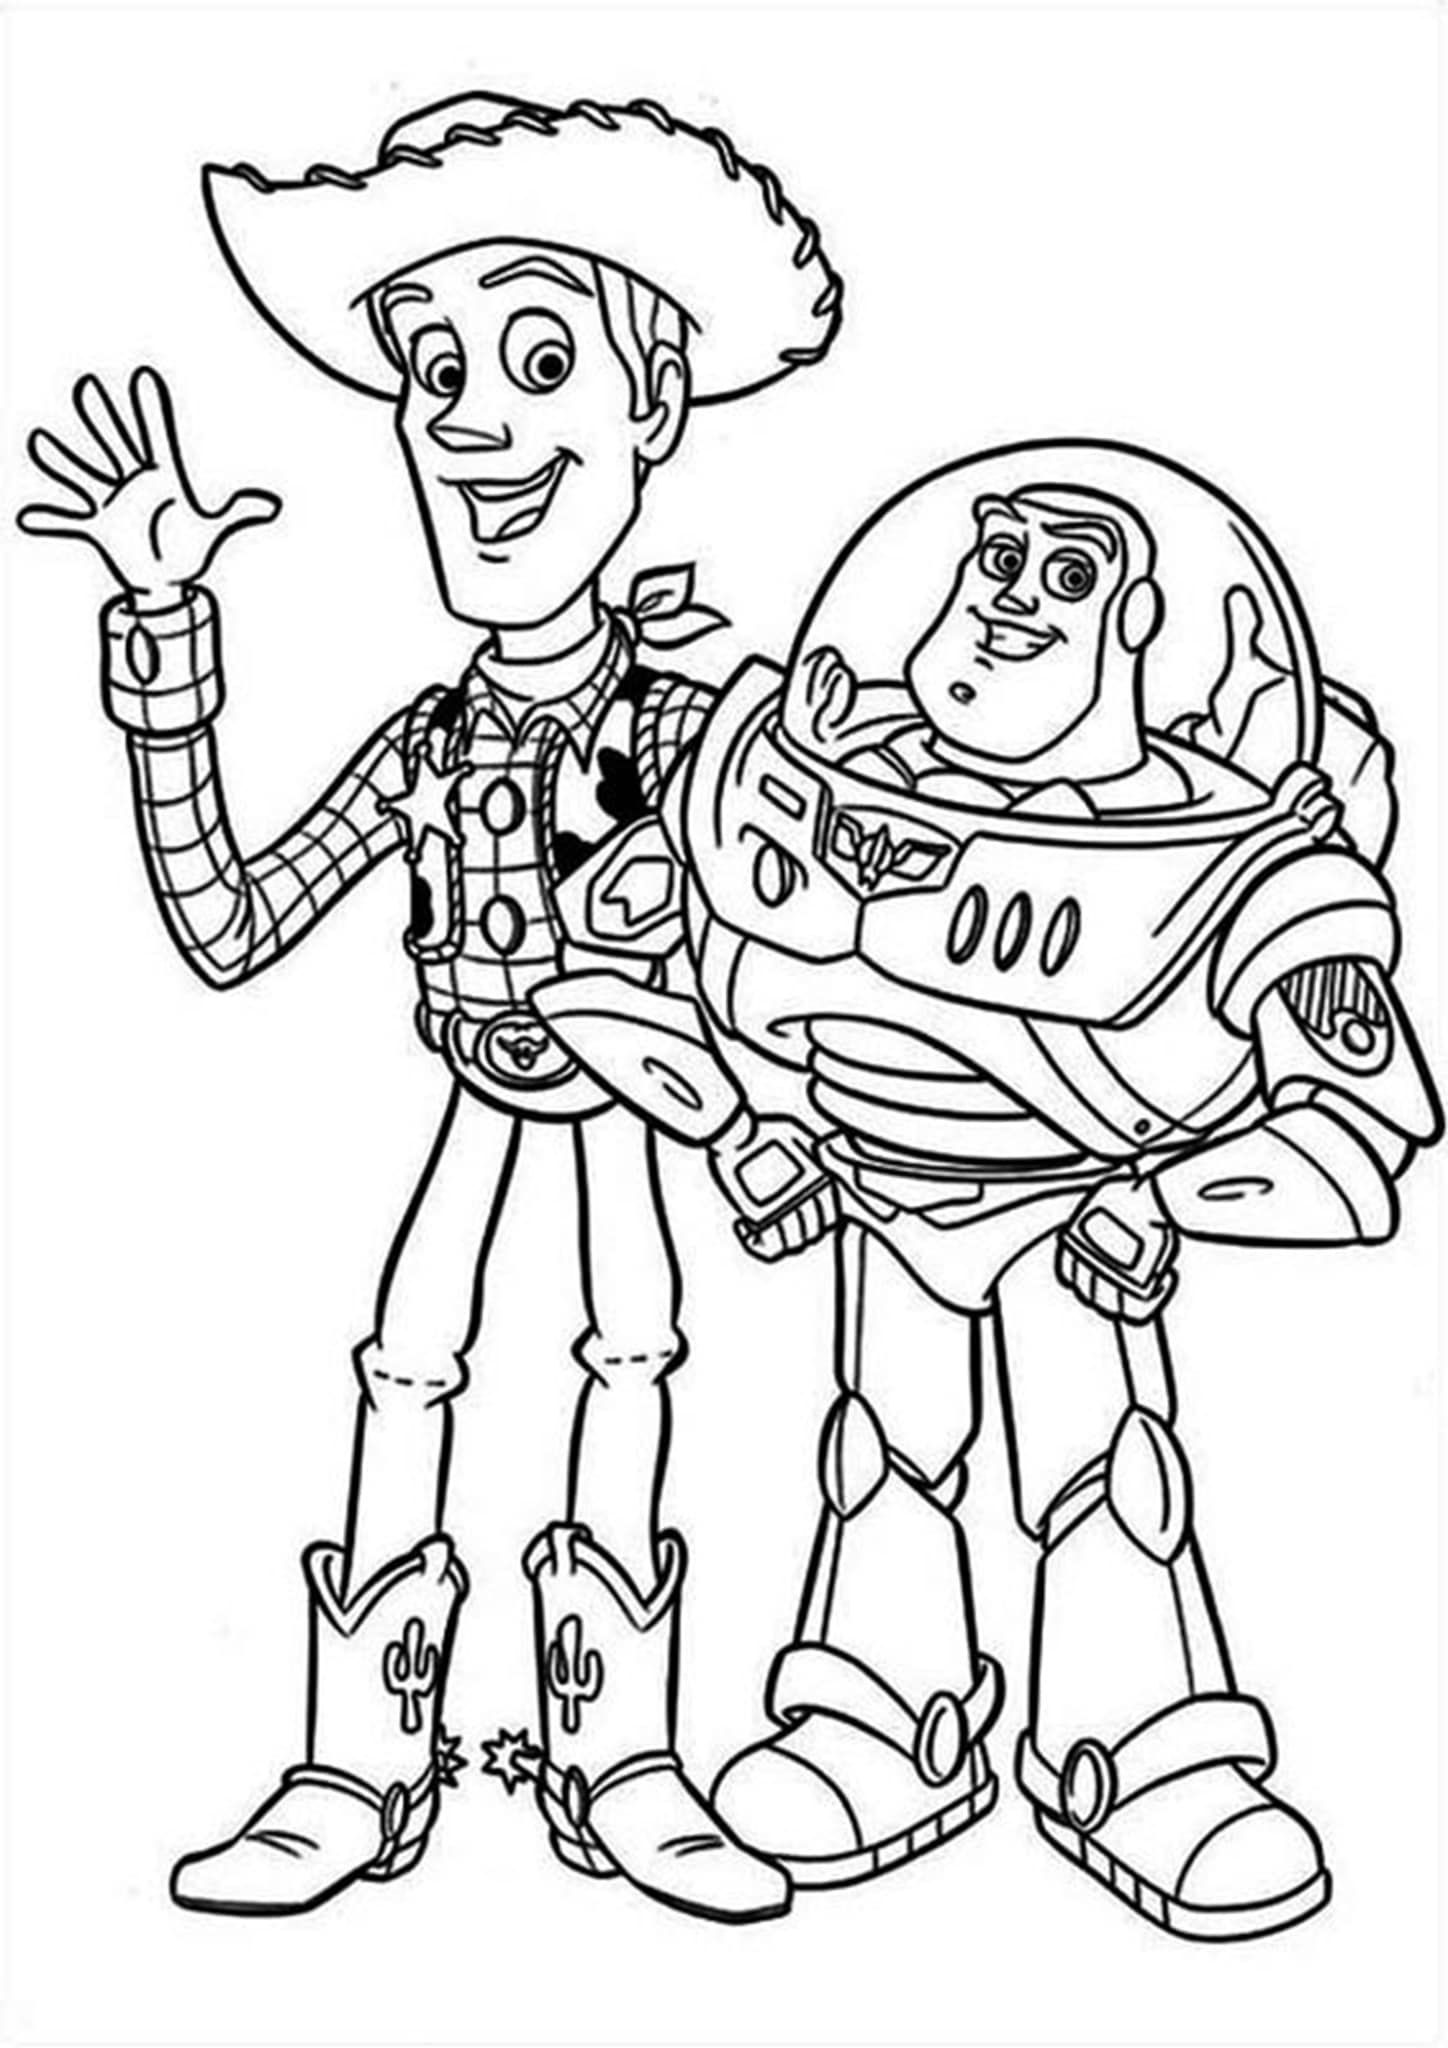 Free Easy To Print Toy Story Coloring Pages Toy Story Coloring Pages Dinosaur Coloring Pages Online Coloring Pages